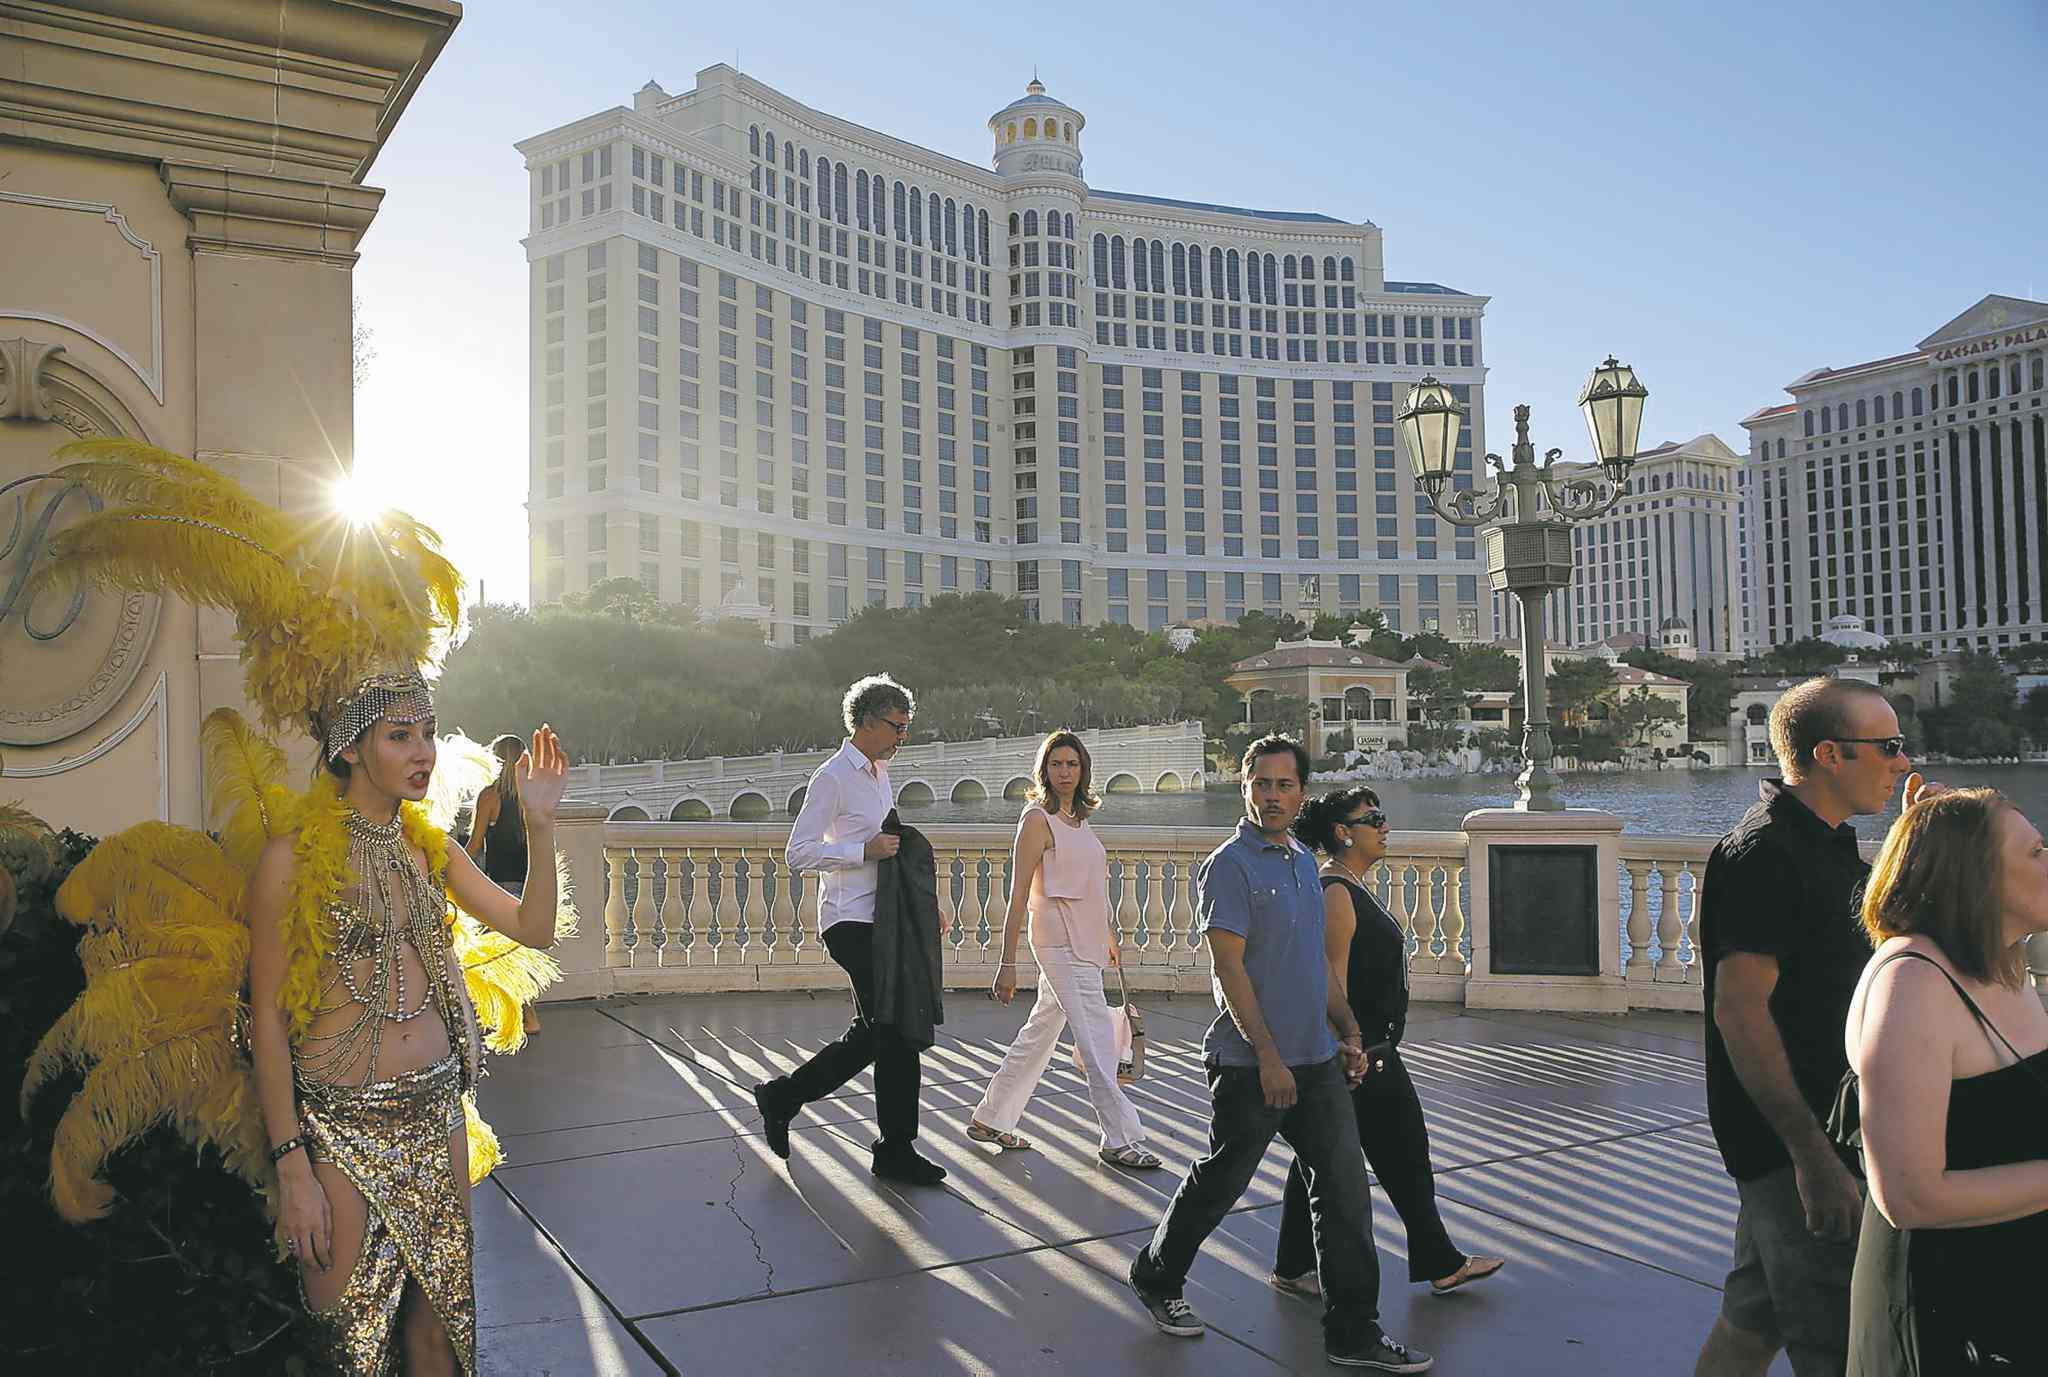 John Locher / The Associated PressPeople walk by the Bellagio hotel in Las Vegas. This year, hotels will take in a record $2.25 billion in revenue from fees and surcharges, six per cent more than last year and nearly double that of a decade ago.